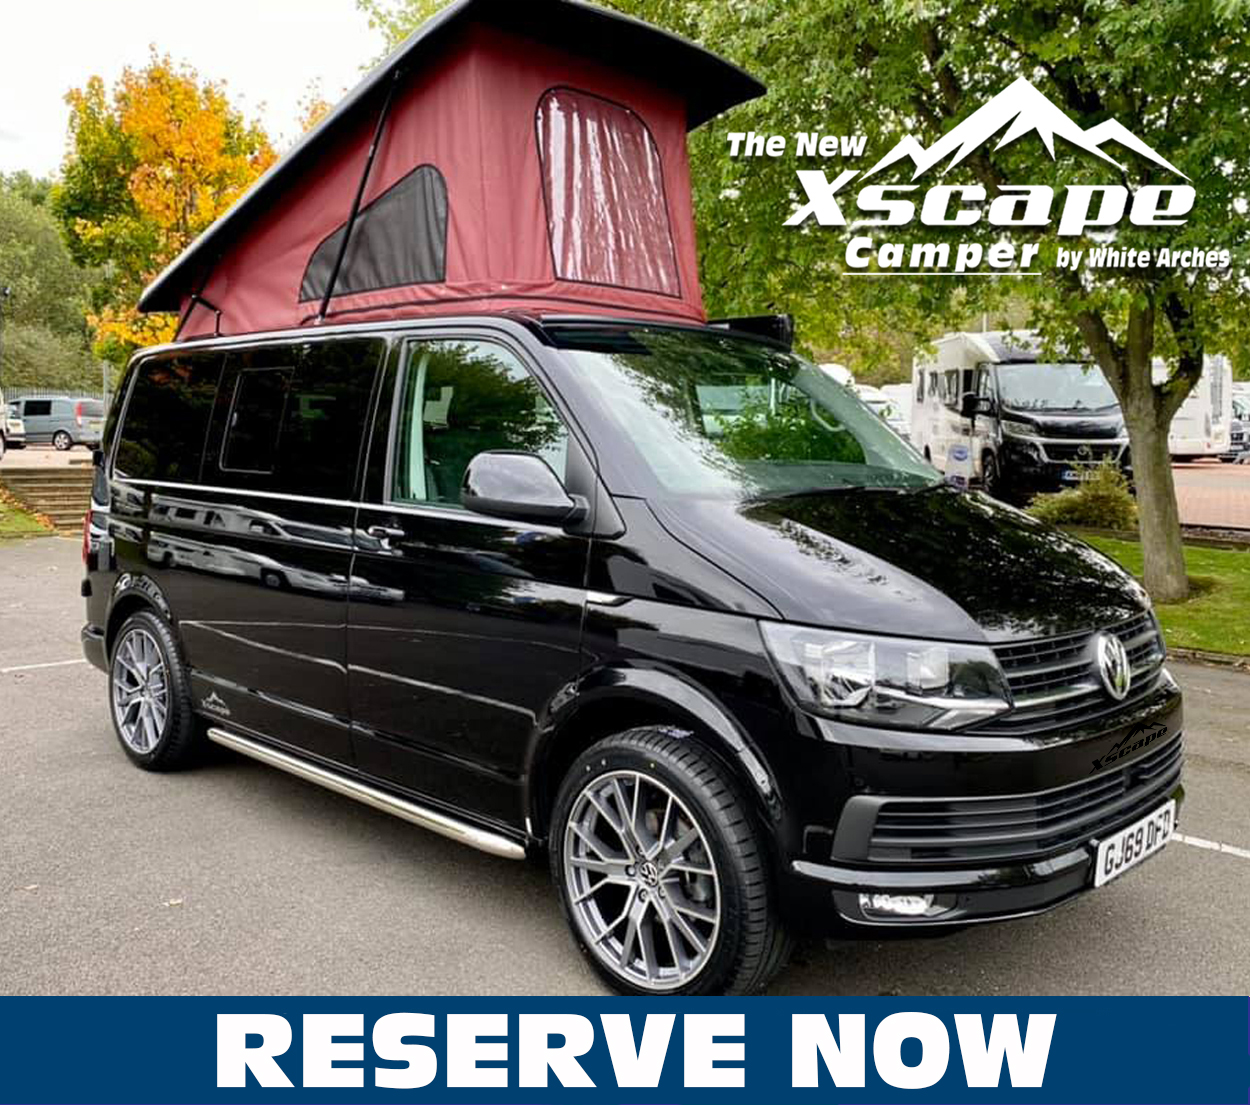 Xscape Camper BLACK Thumb v3 ViewNOW copy